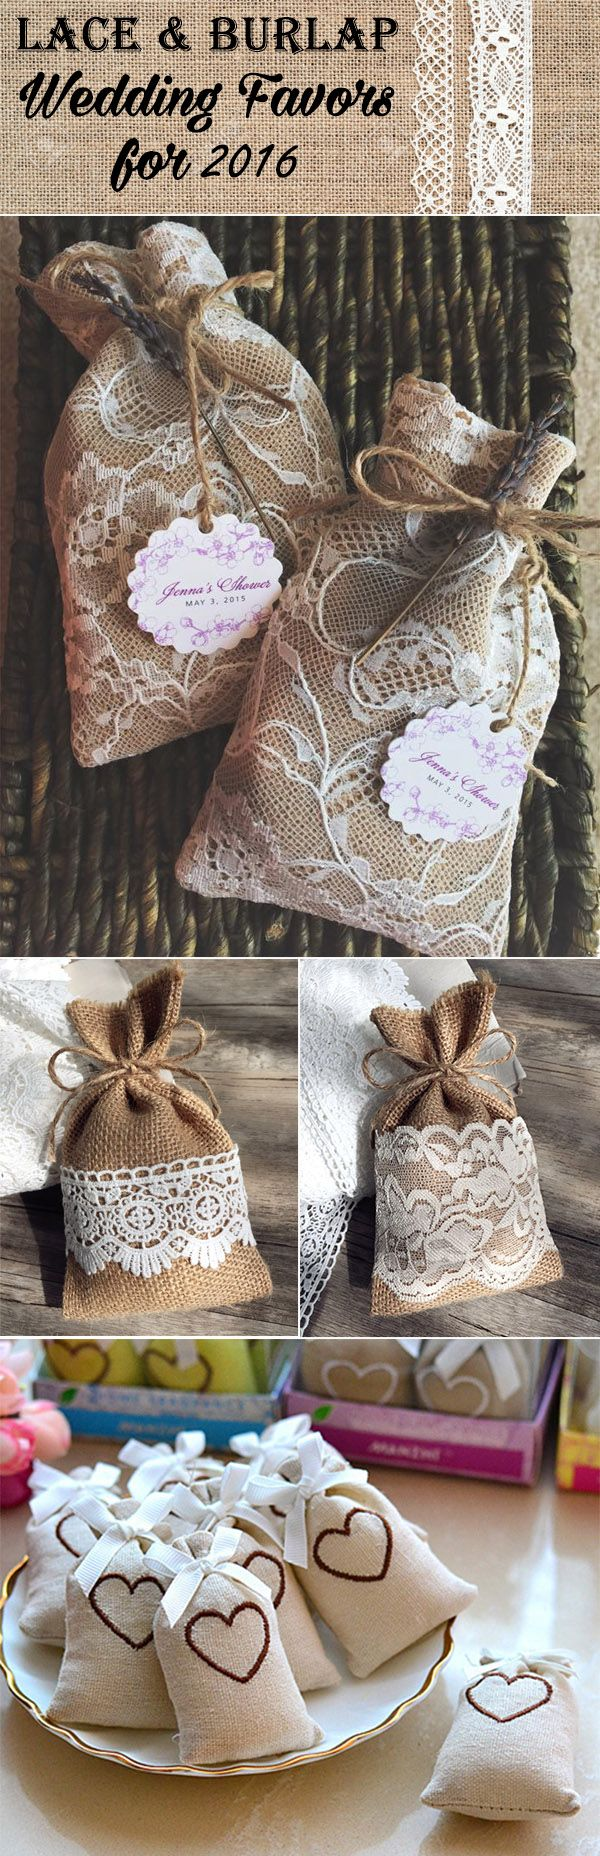 Top country rustic lace and burlap wedding ideas including